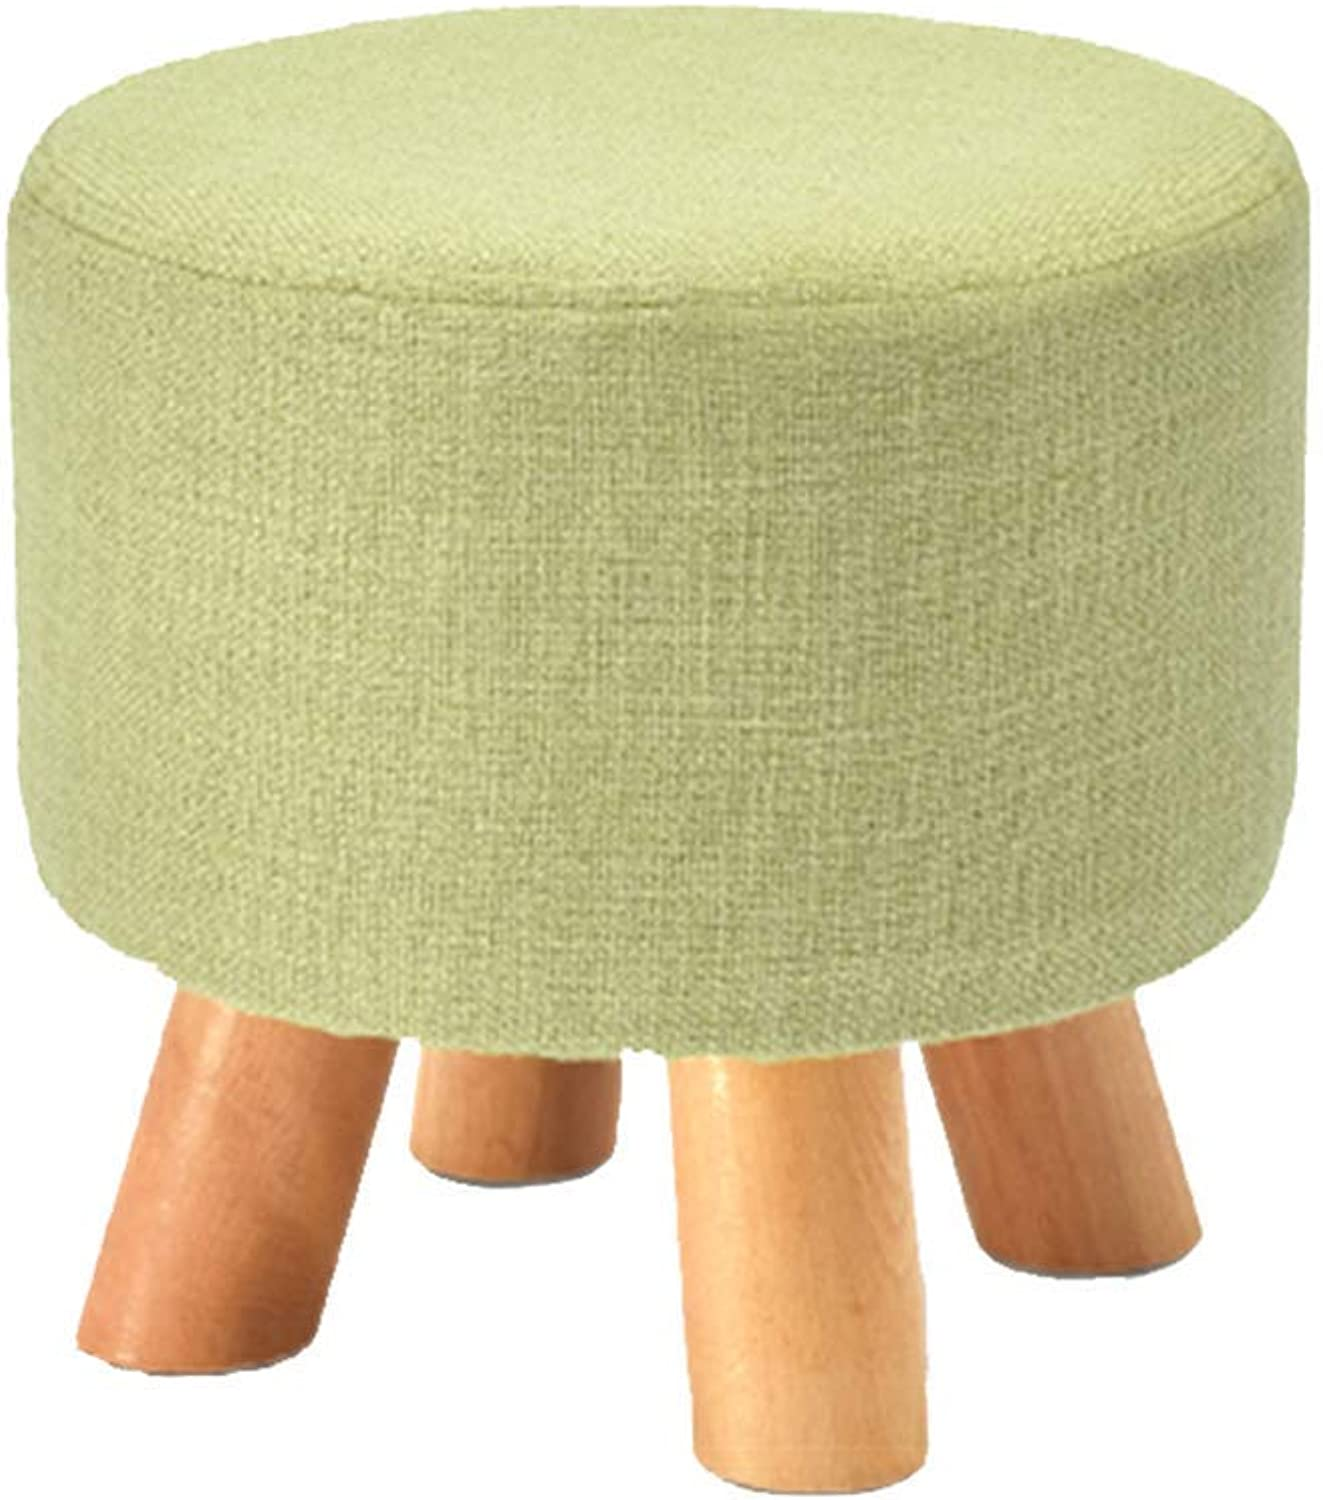 Comfortable Lounge Chair Stool Solid Wood Frame Natural Cotton and Linen Stool Cover Removable and Washable 29  27cm